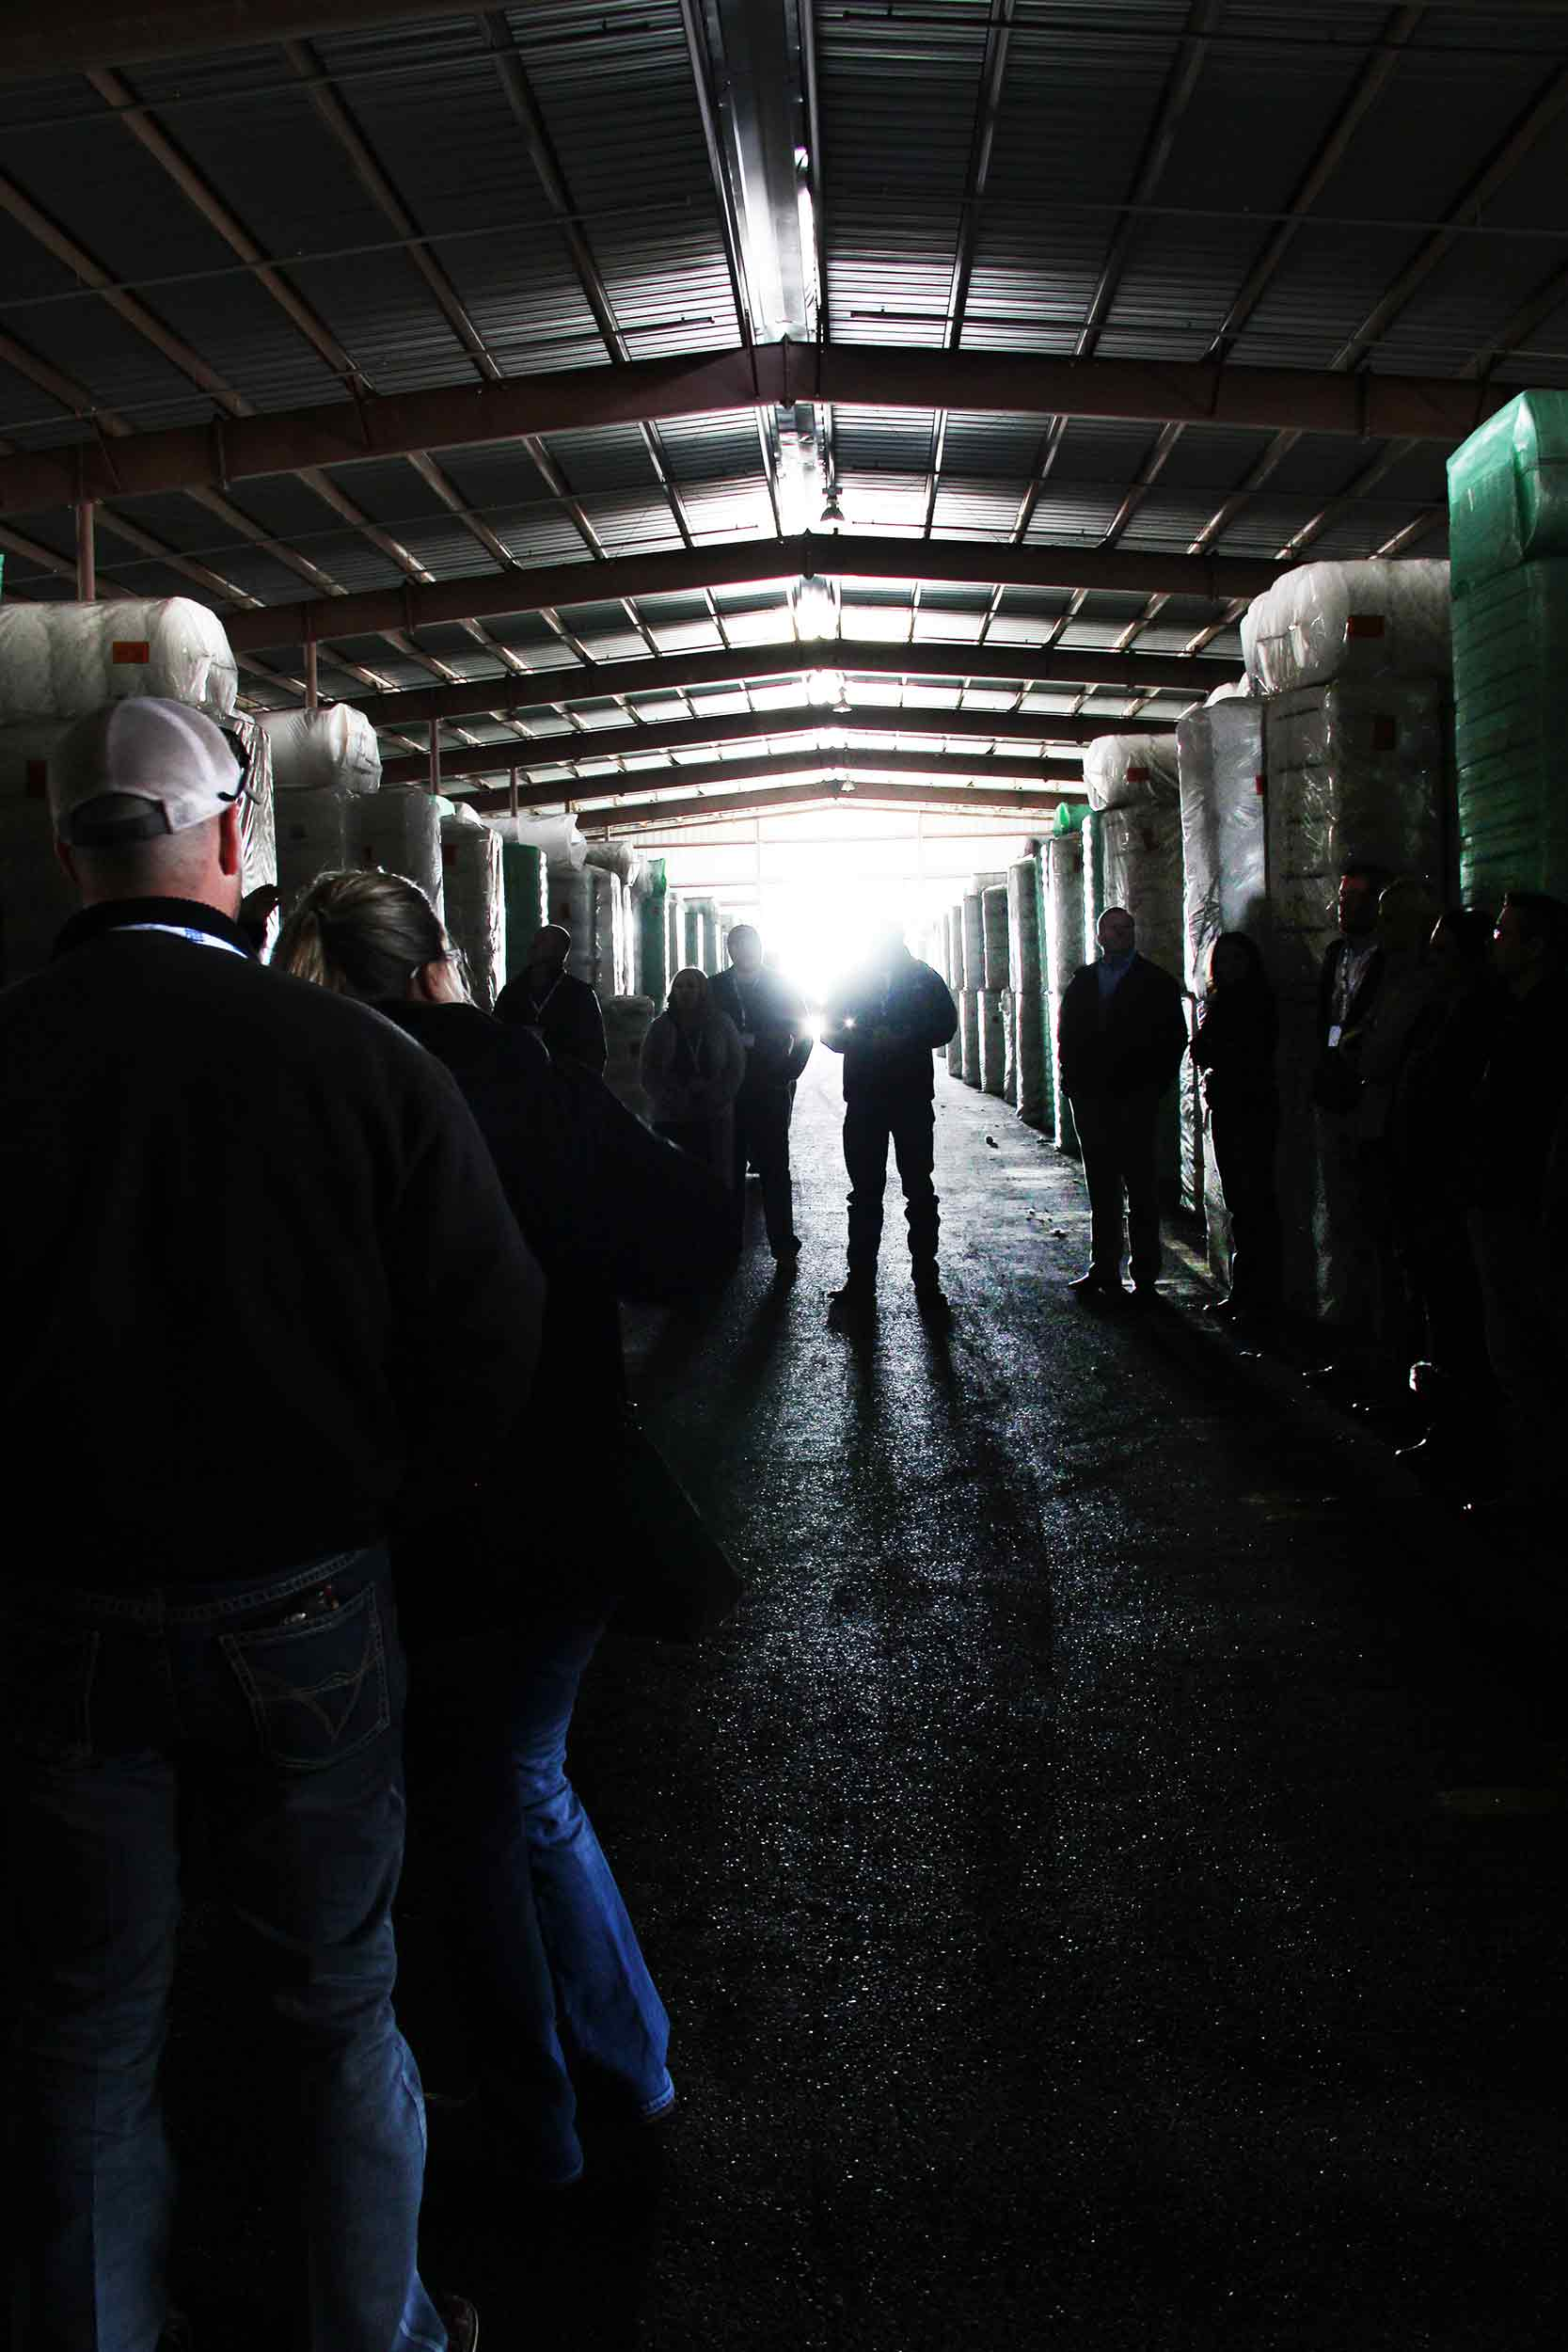 Producers look on during Farmers Cooperative Compress' tour of its cotton warehouses.